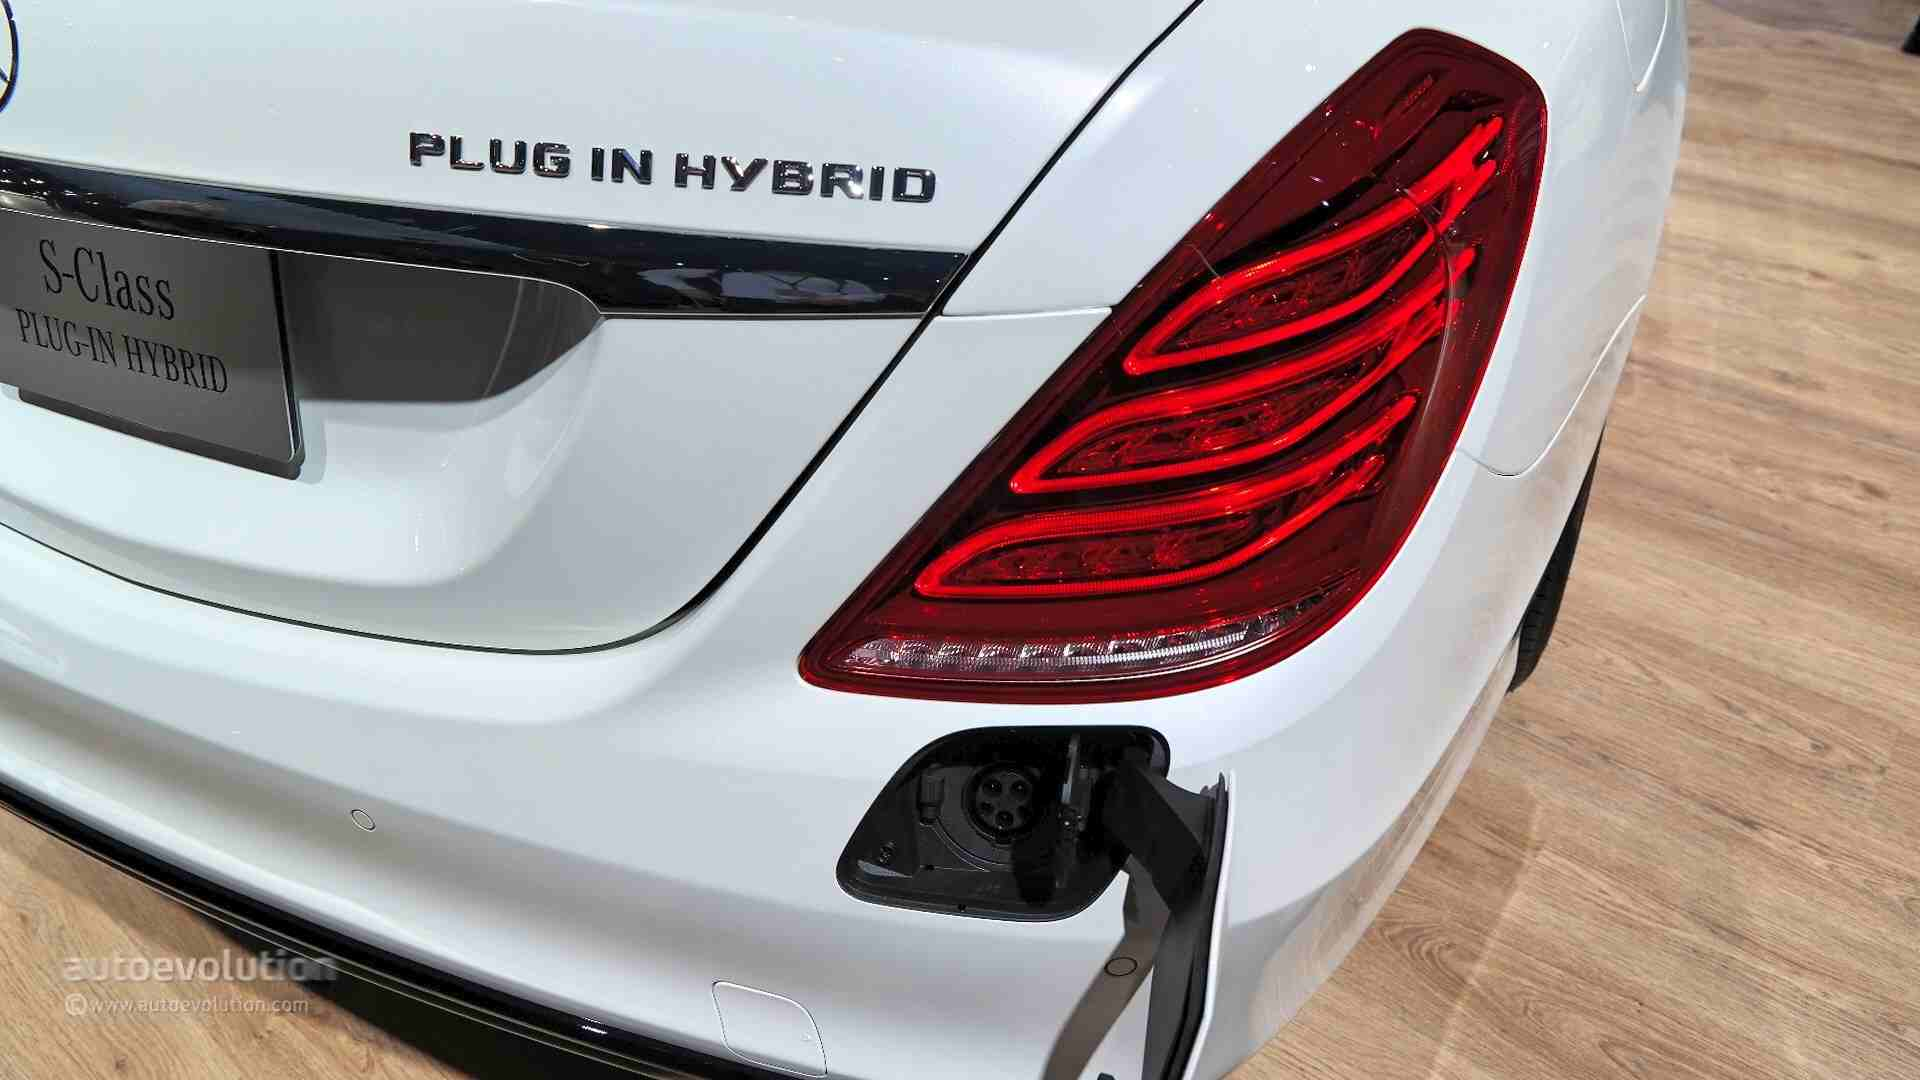 Mercedes benz s550 plug in hybrid quietly introduced in for 2017 mercedes benz s550 plug in hybrid